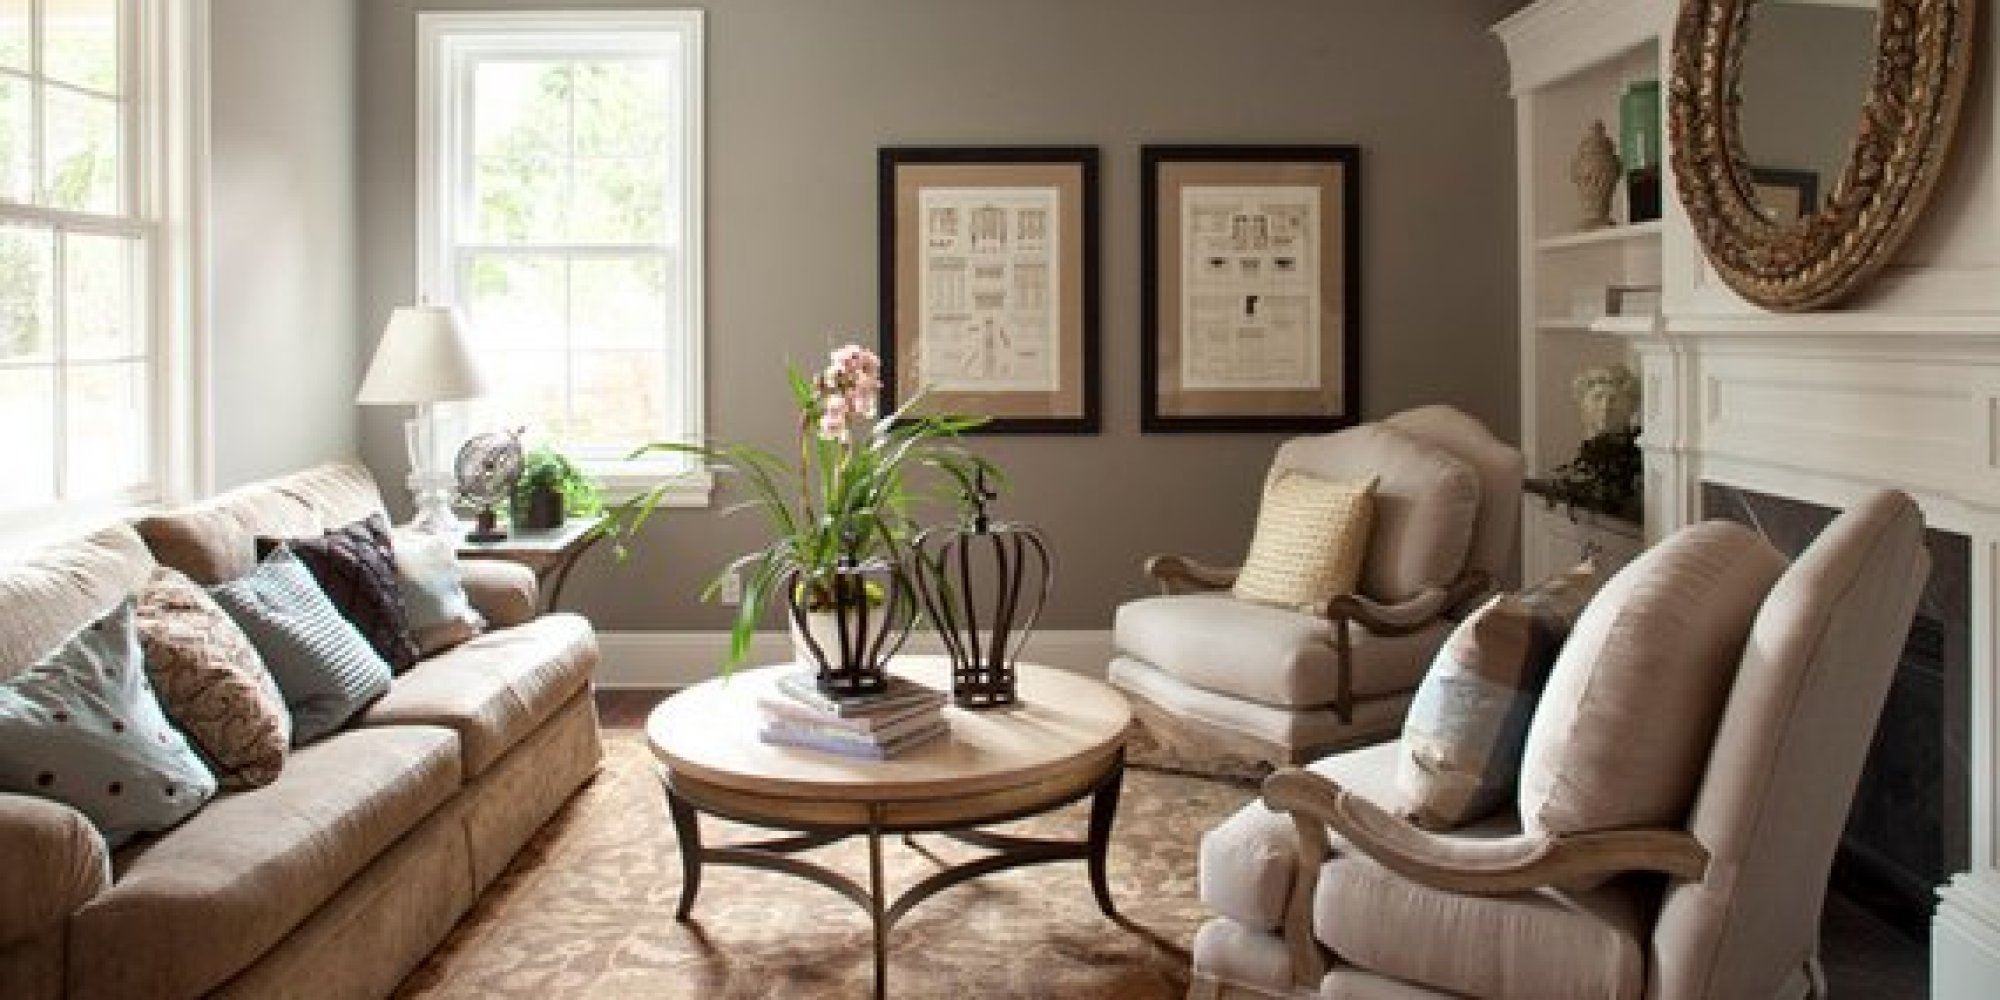 The 6 best paint colors that work in any home - Living room paint colors for 2014 ...